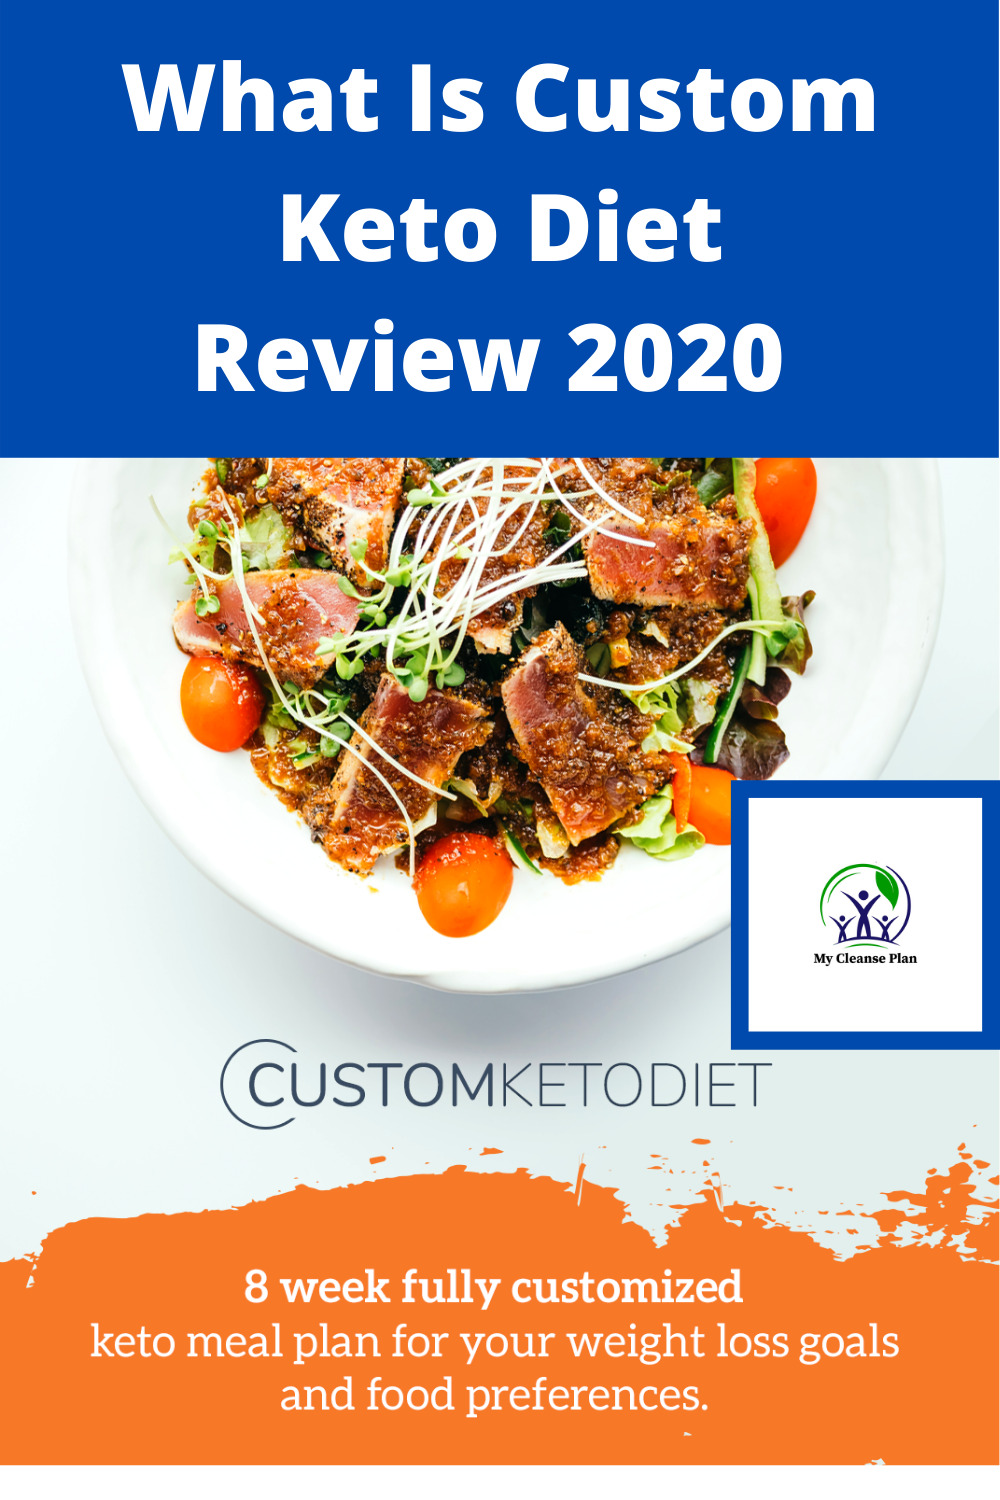 What Is Custom Keto Diet - 2020 Review